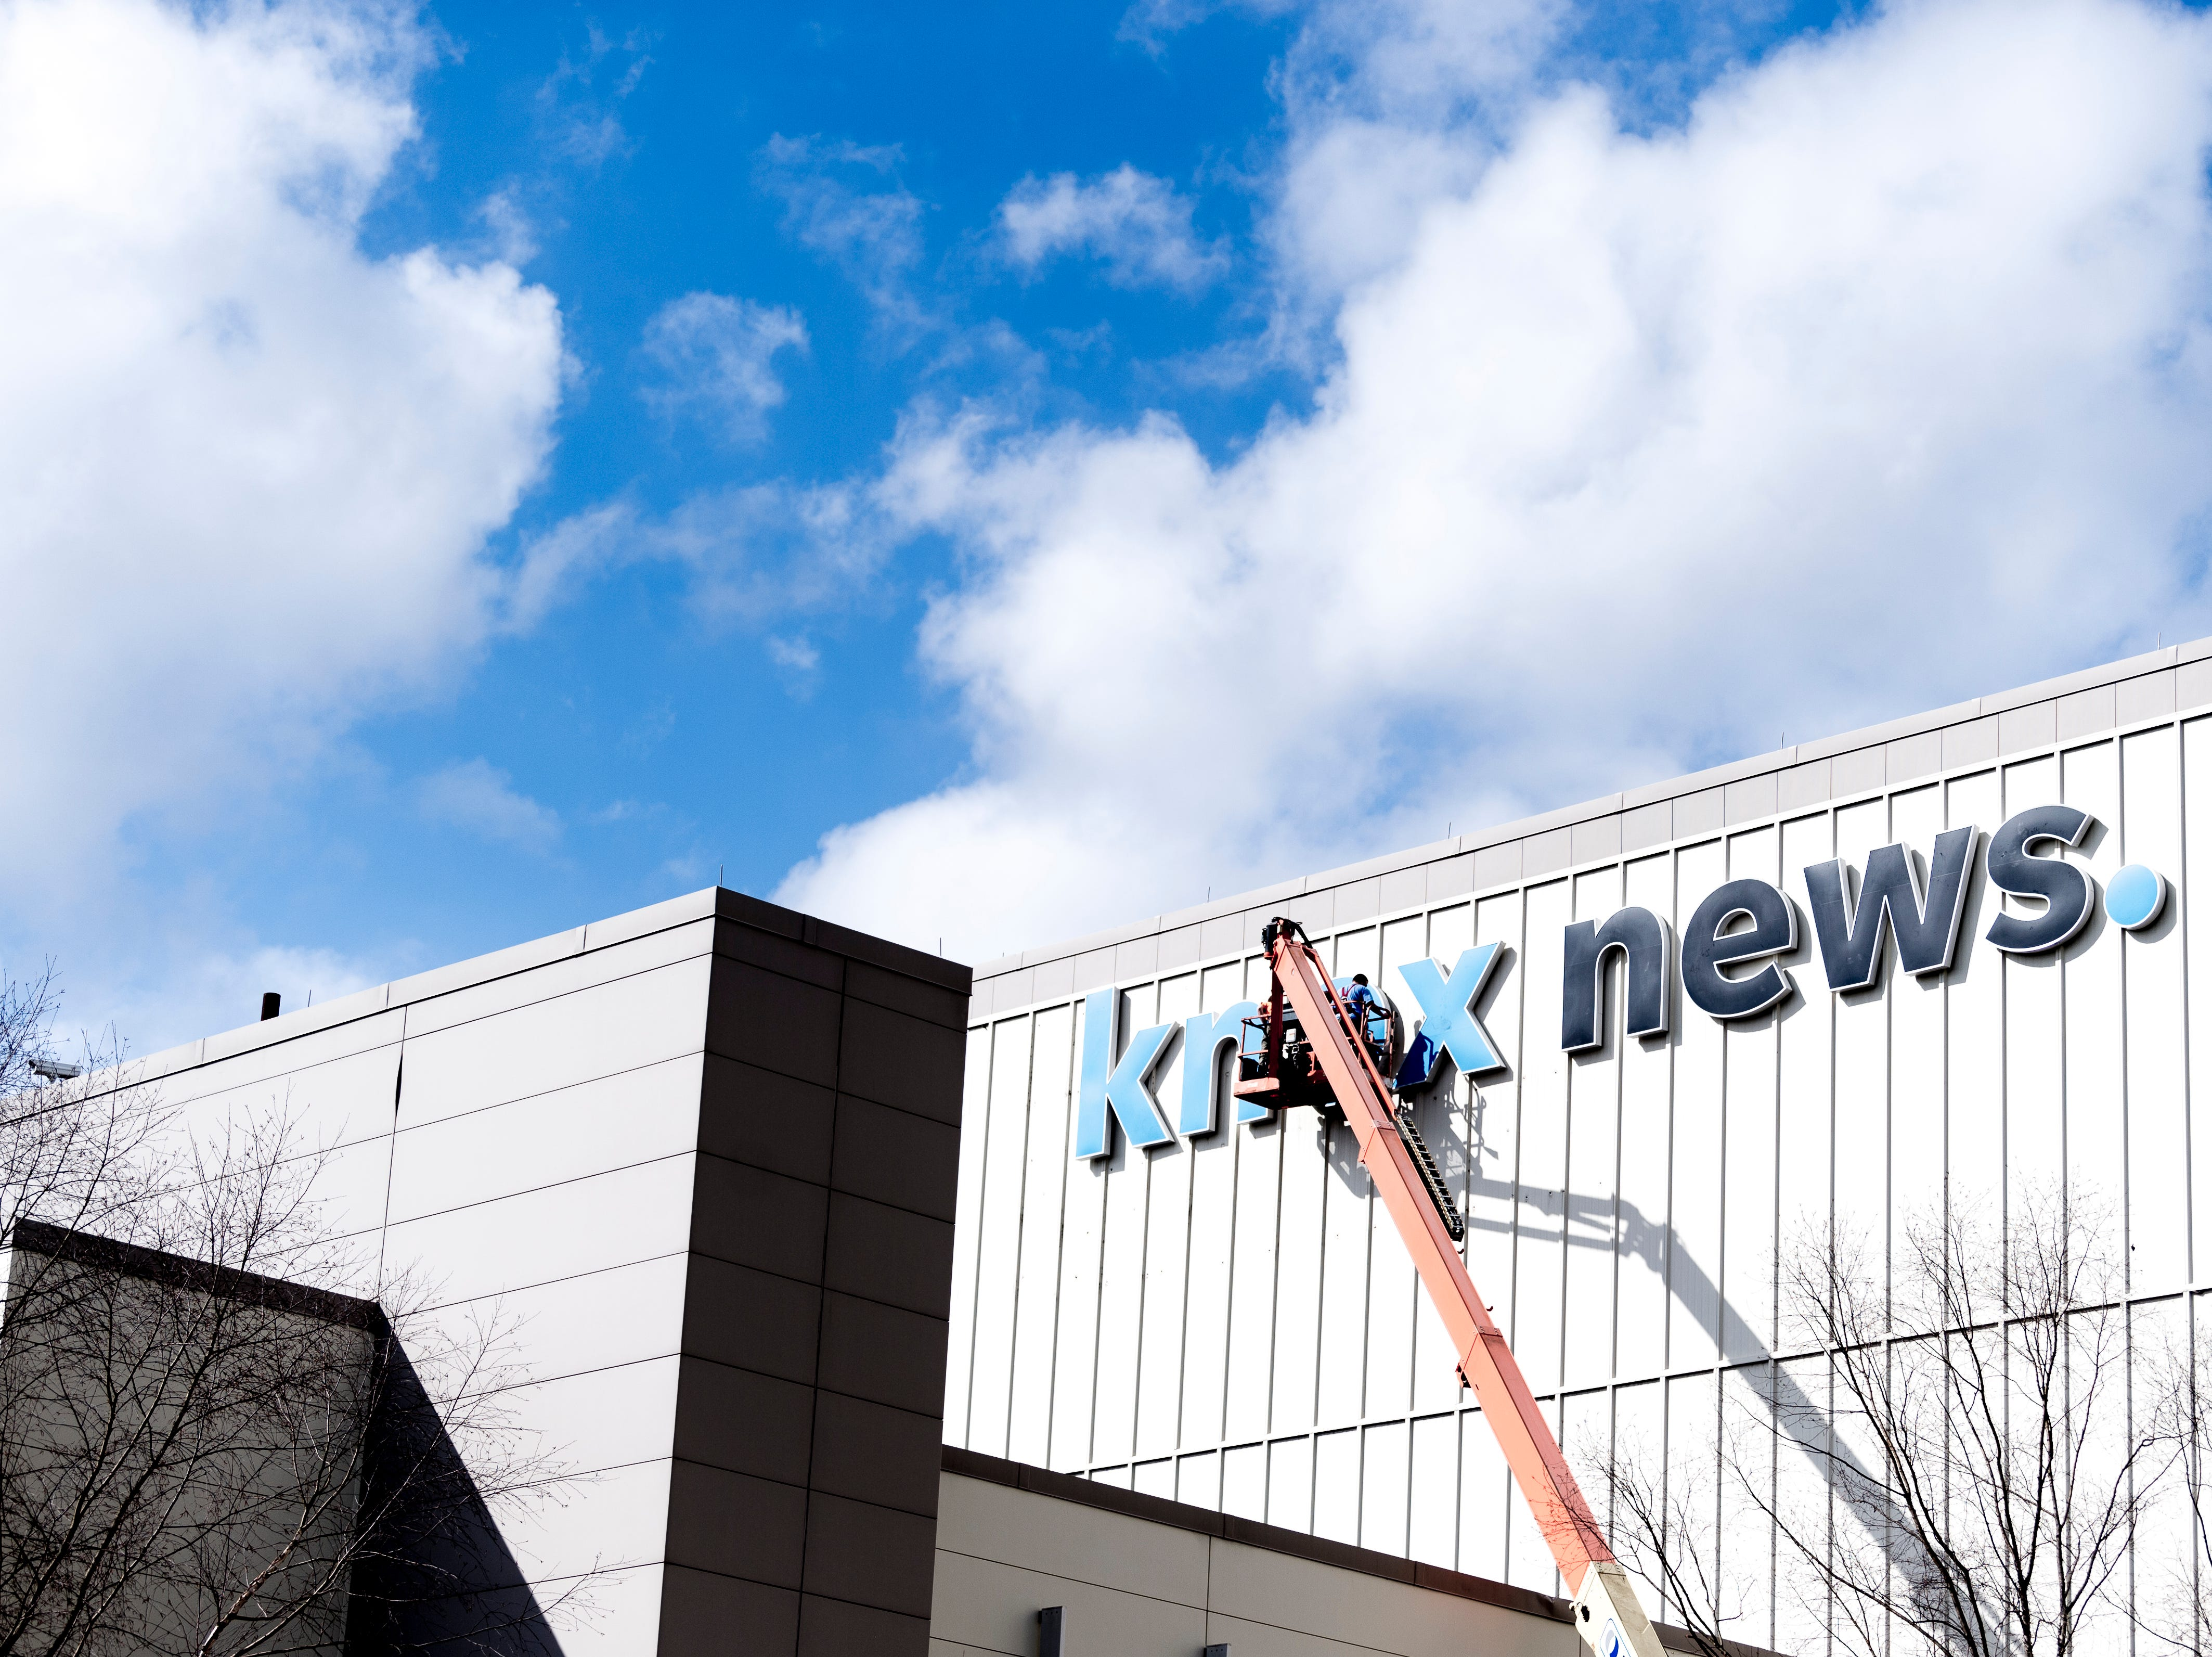 """Workers from Sycamore Sign Service install the """"knox news."""" sign on the front of the Knoxville News Sentinel building on 2332 News Sentinel Dr. in Knoxville, Tennessee on Thursday, February 7, 2019."""